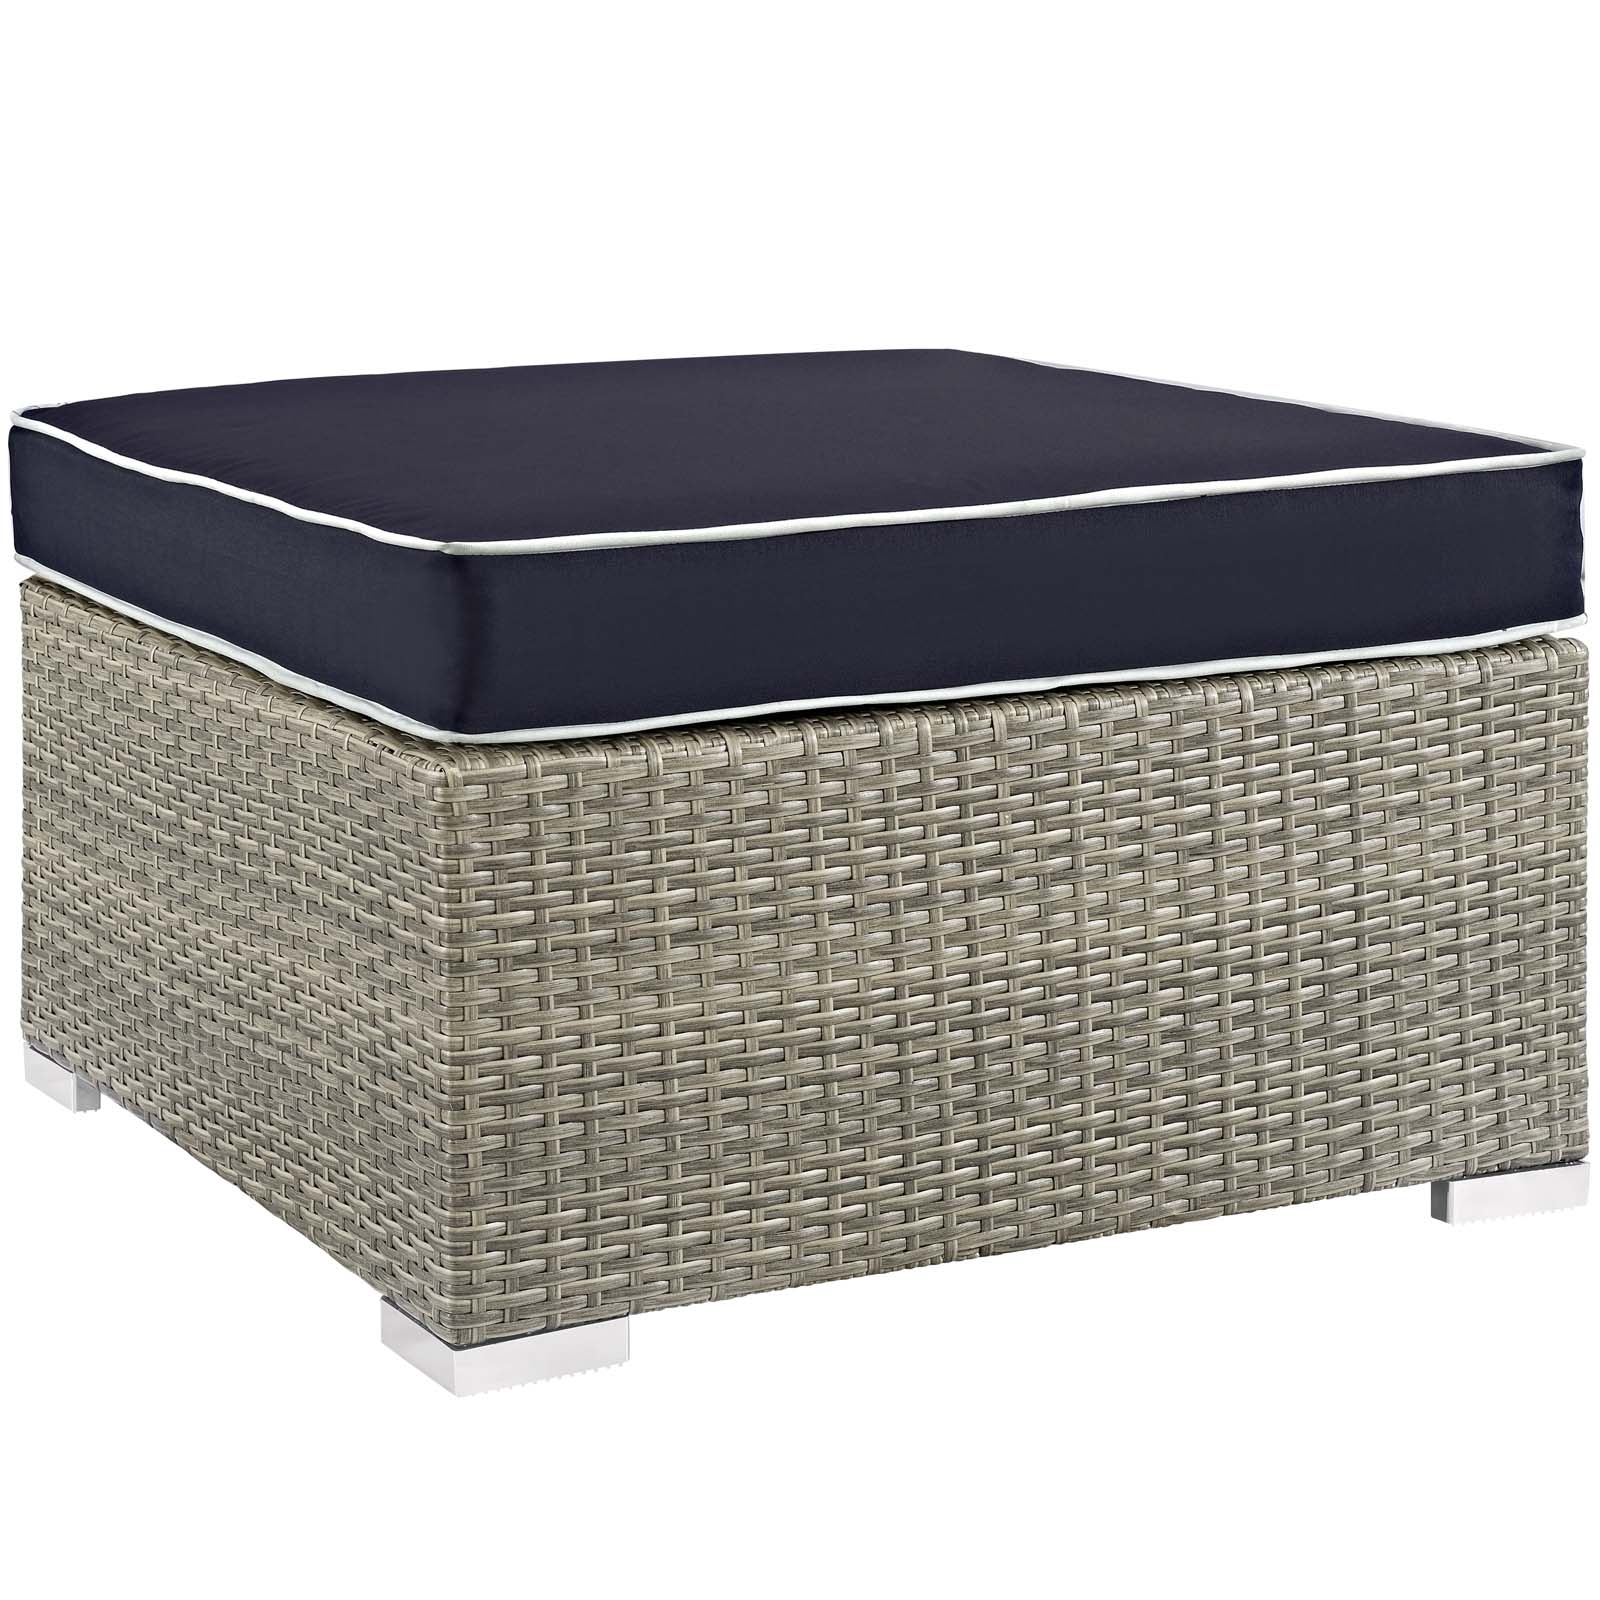 Repose Outdoor Patio Upholstered Fabric Ottoman in Light Gray Navy